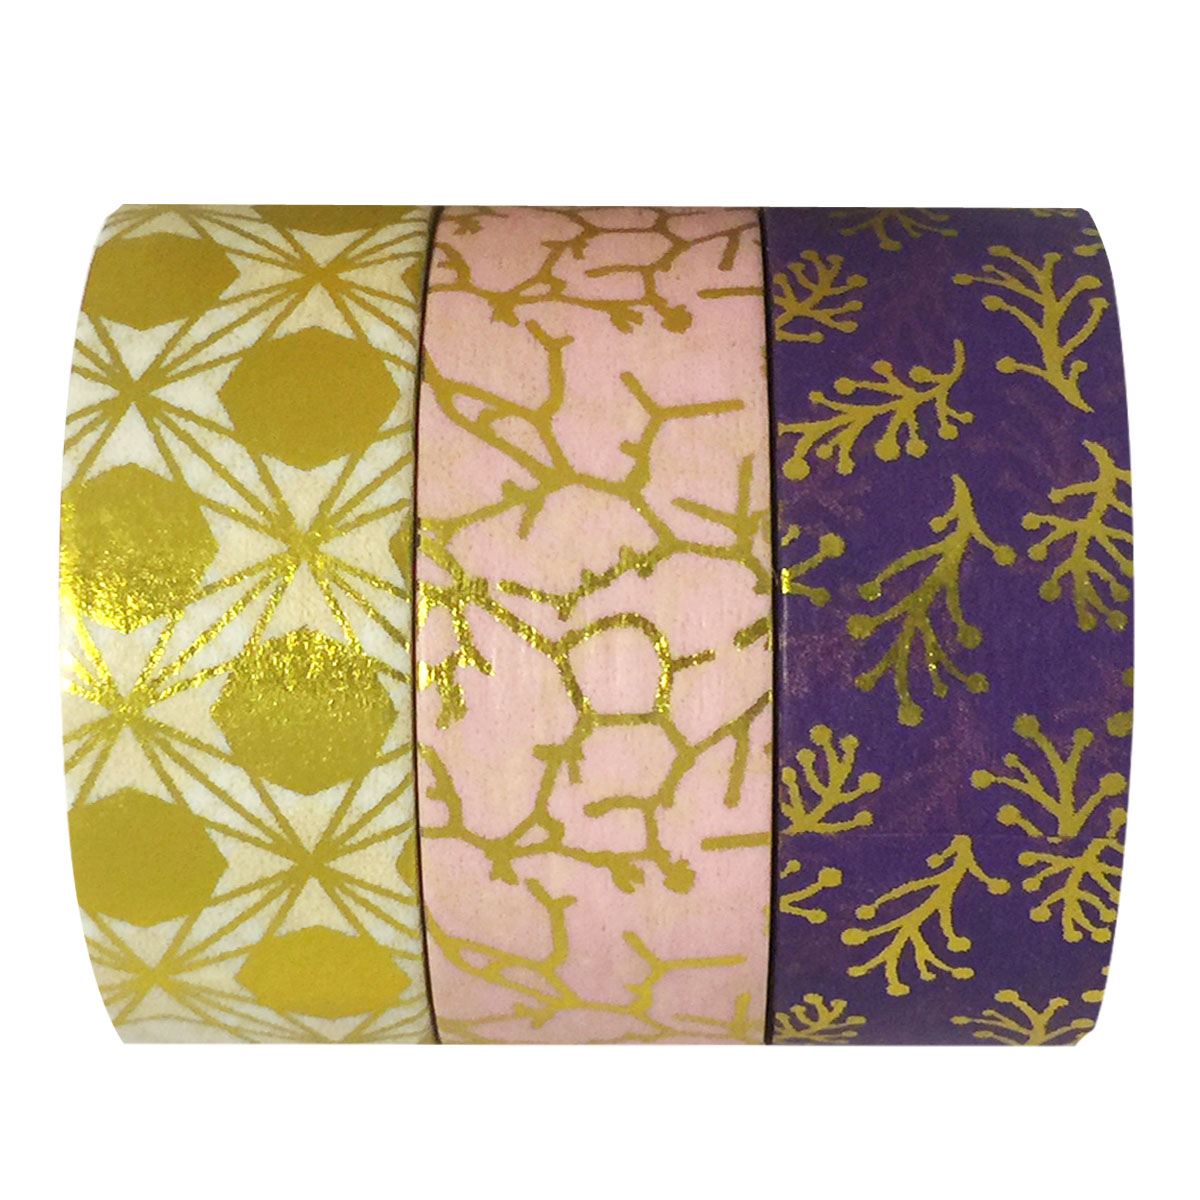 Wrapables® Reborn Metallic Foil Washi Masking Tape (set of 3), 10M L x 15mm W